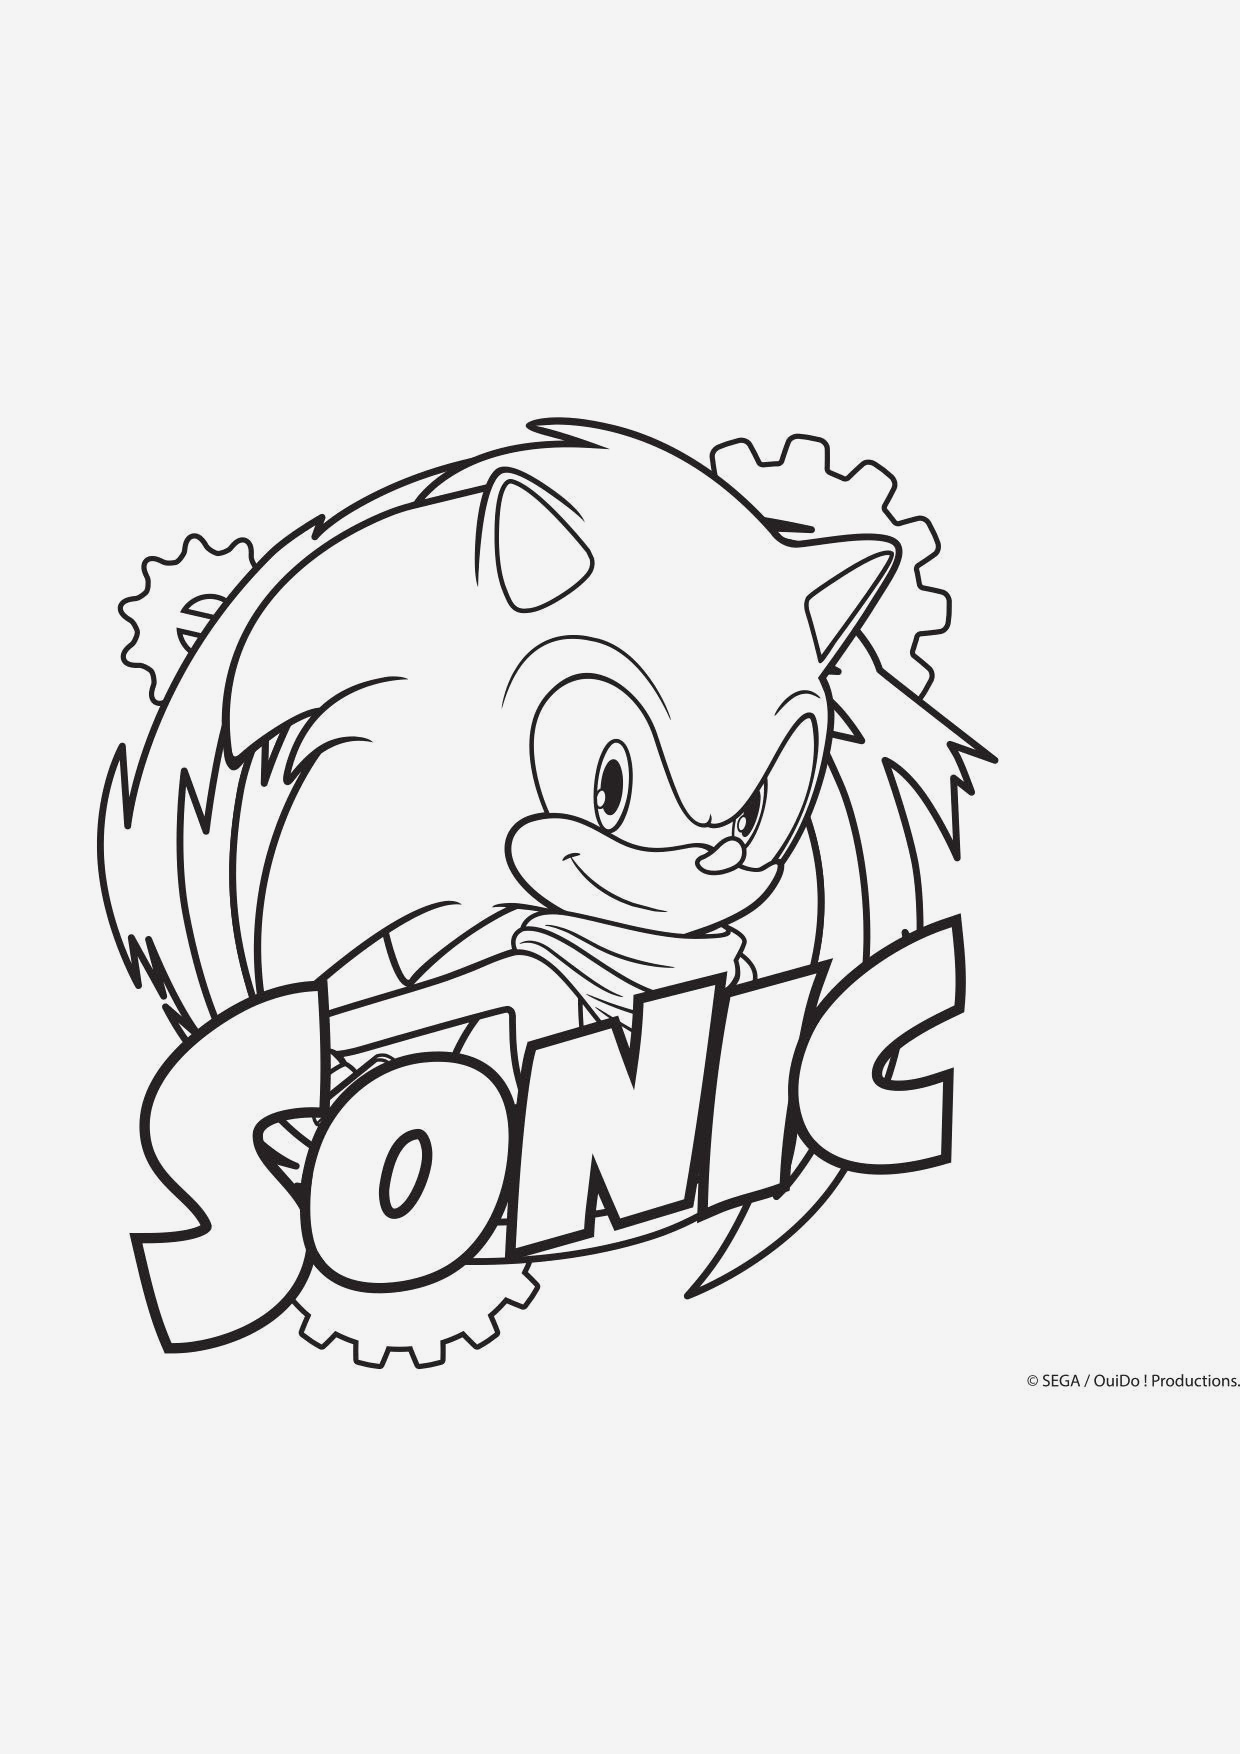 Coloriage sonic Le Film Awesome Coloriage sonic Coloriage sonic Boom Coloriages Dessins Of Coloriage sonic Le Film